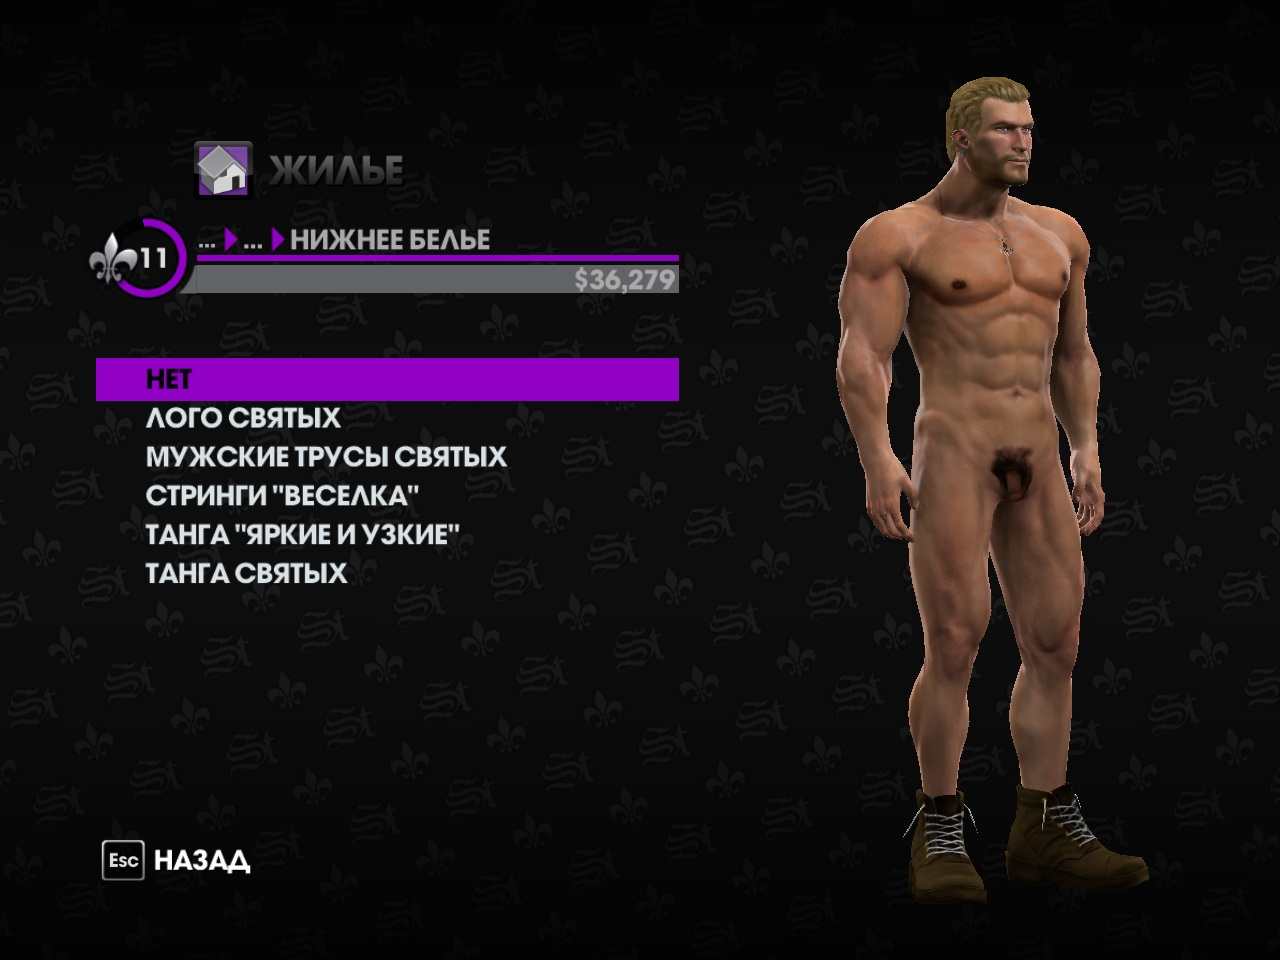 Saints row 3 nude patch sexy images